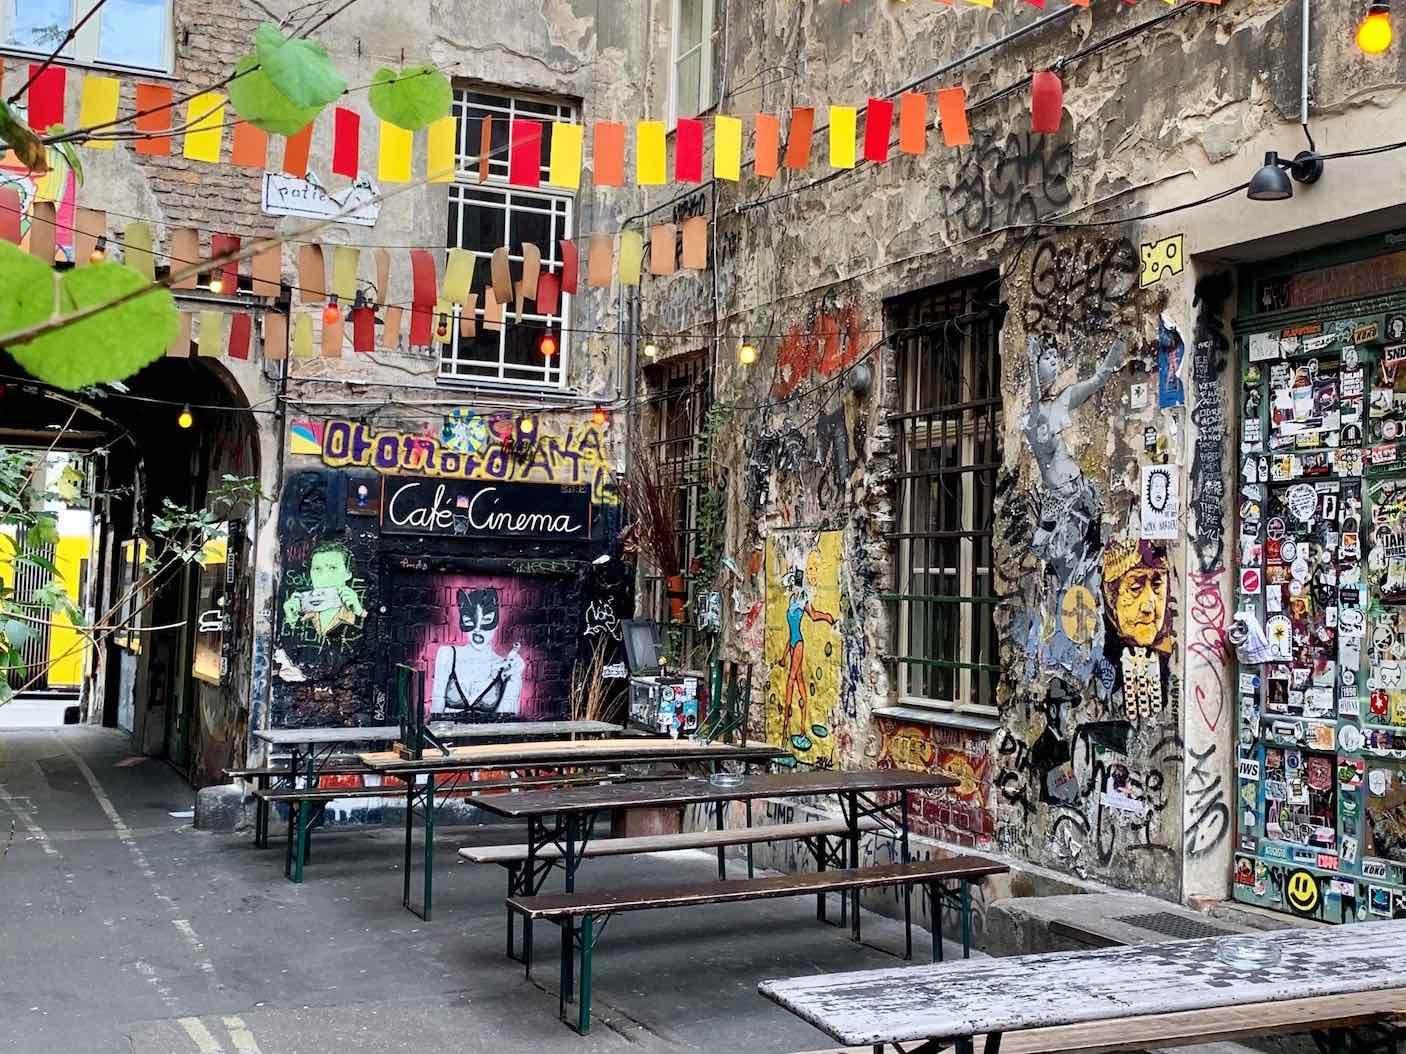 The Weekly Getaway: Street food and urban art in Berlin